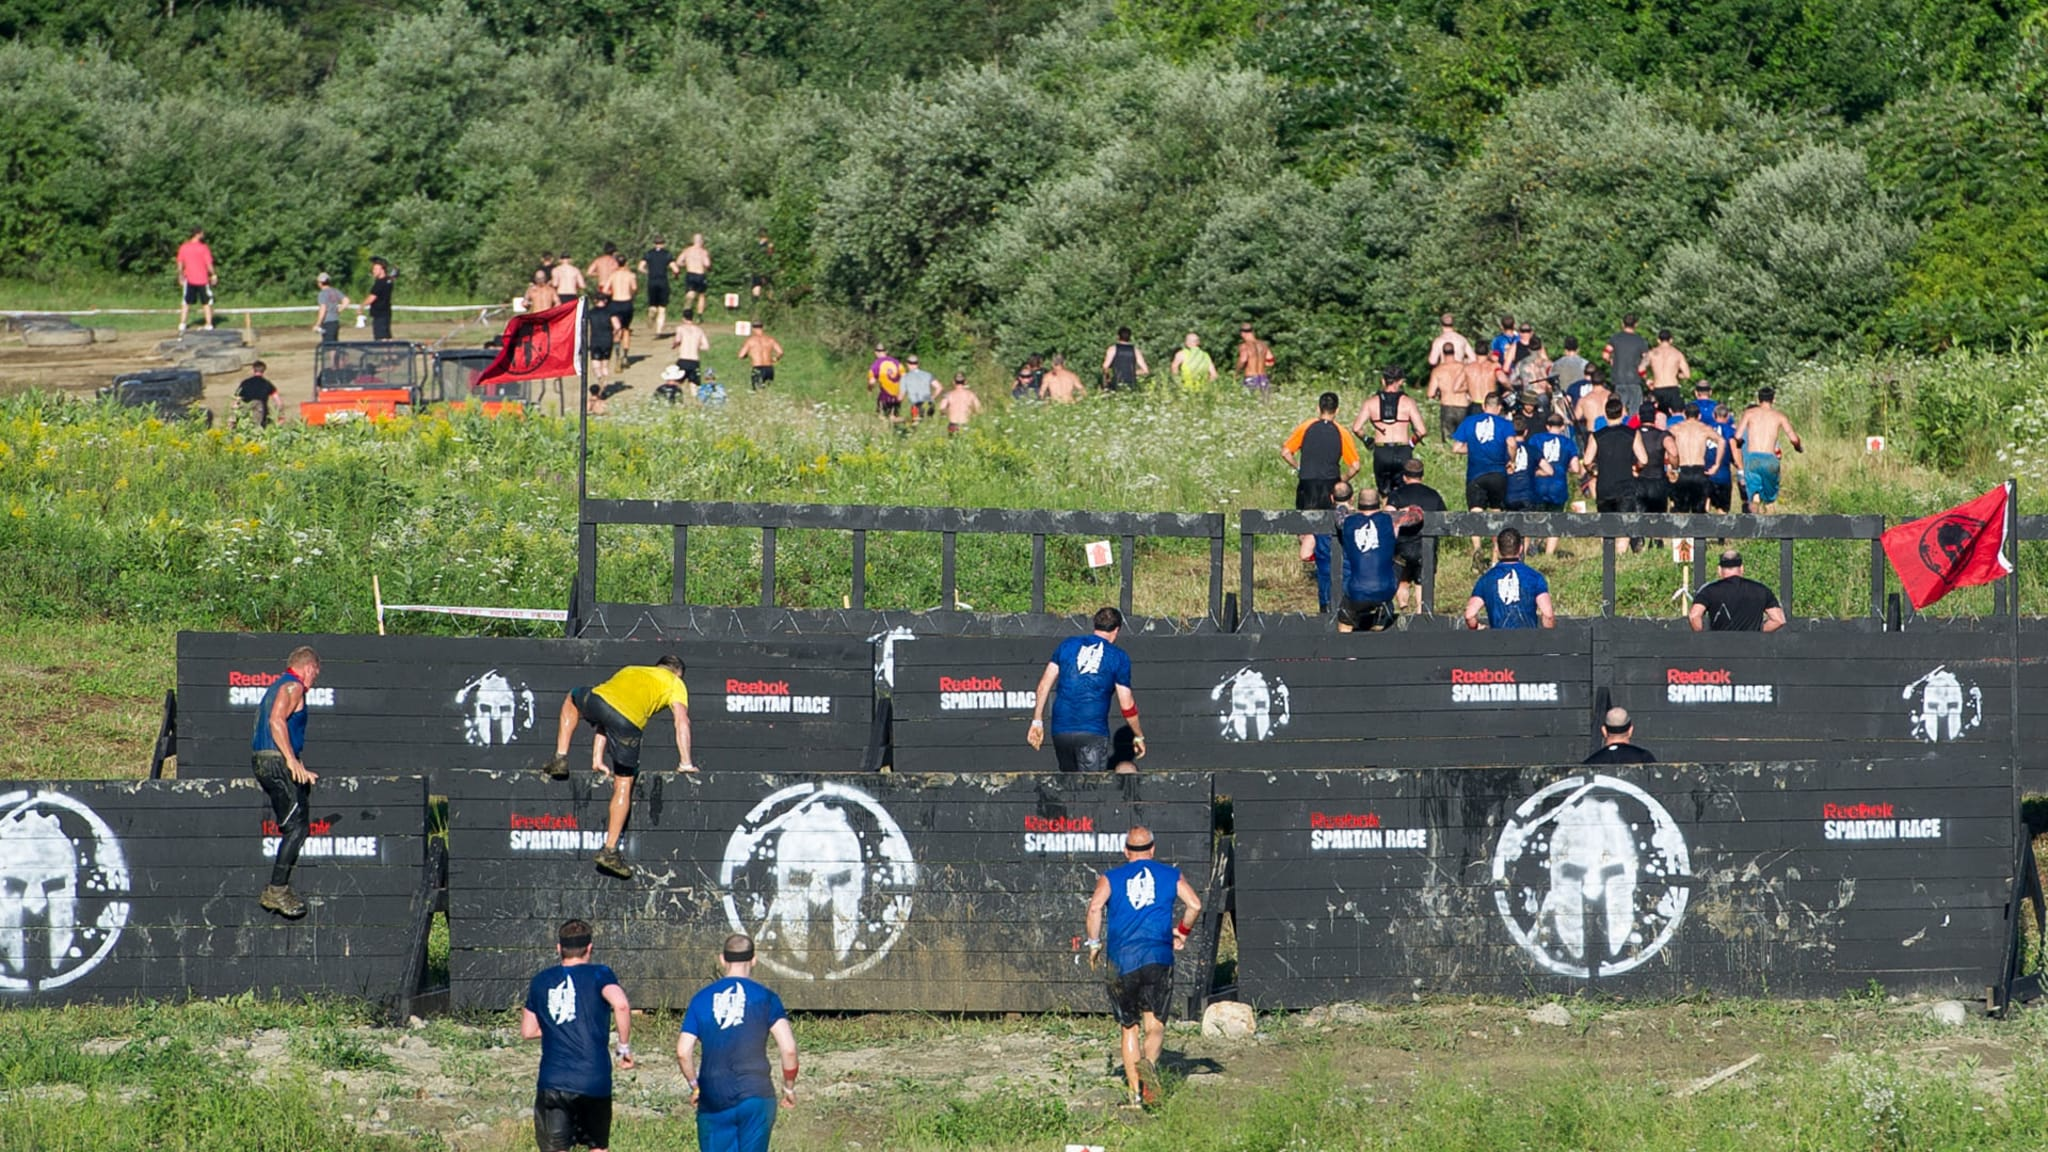 Spartan Race – West Point – New York Sprint Weekend 2019 ...